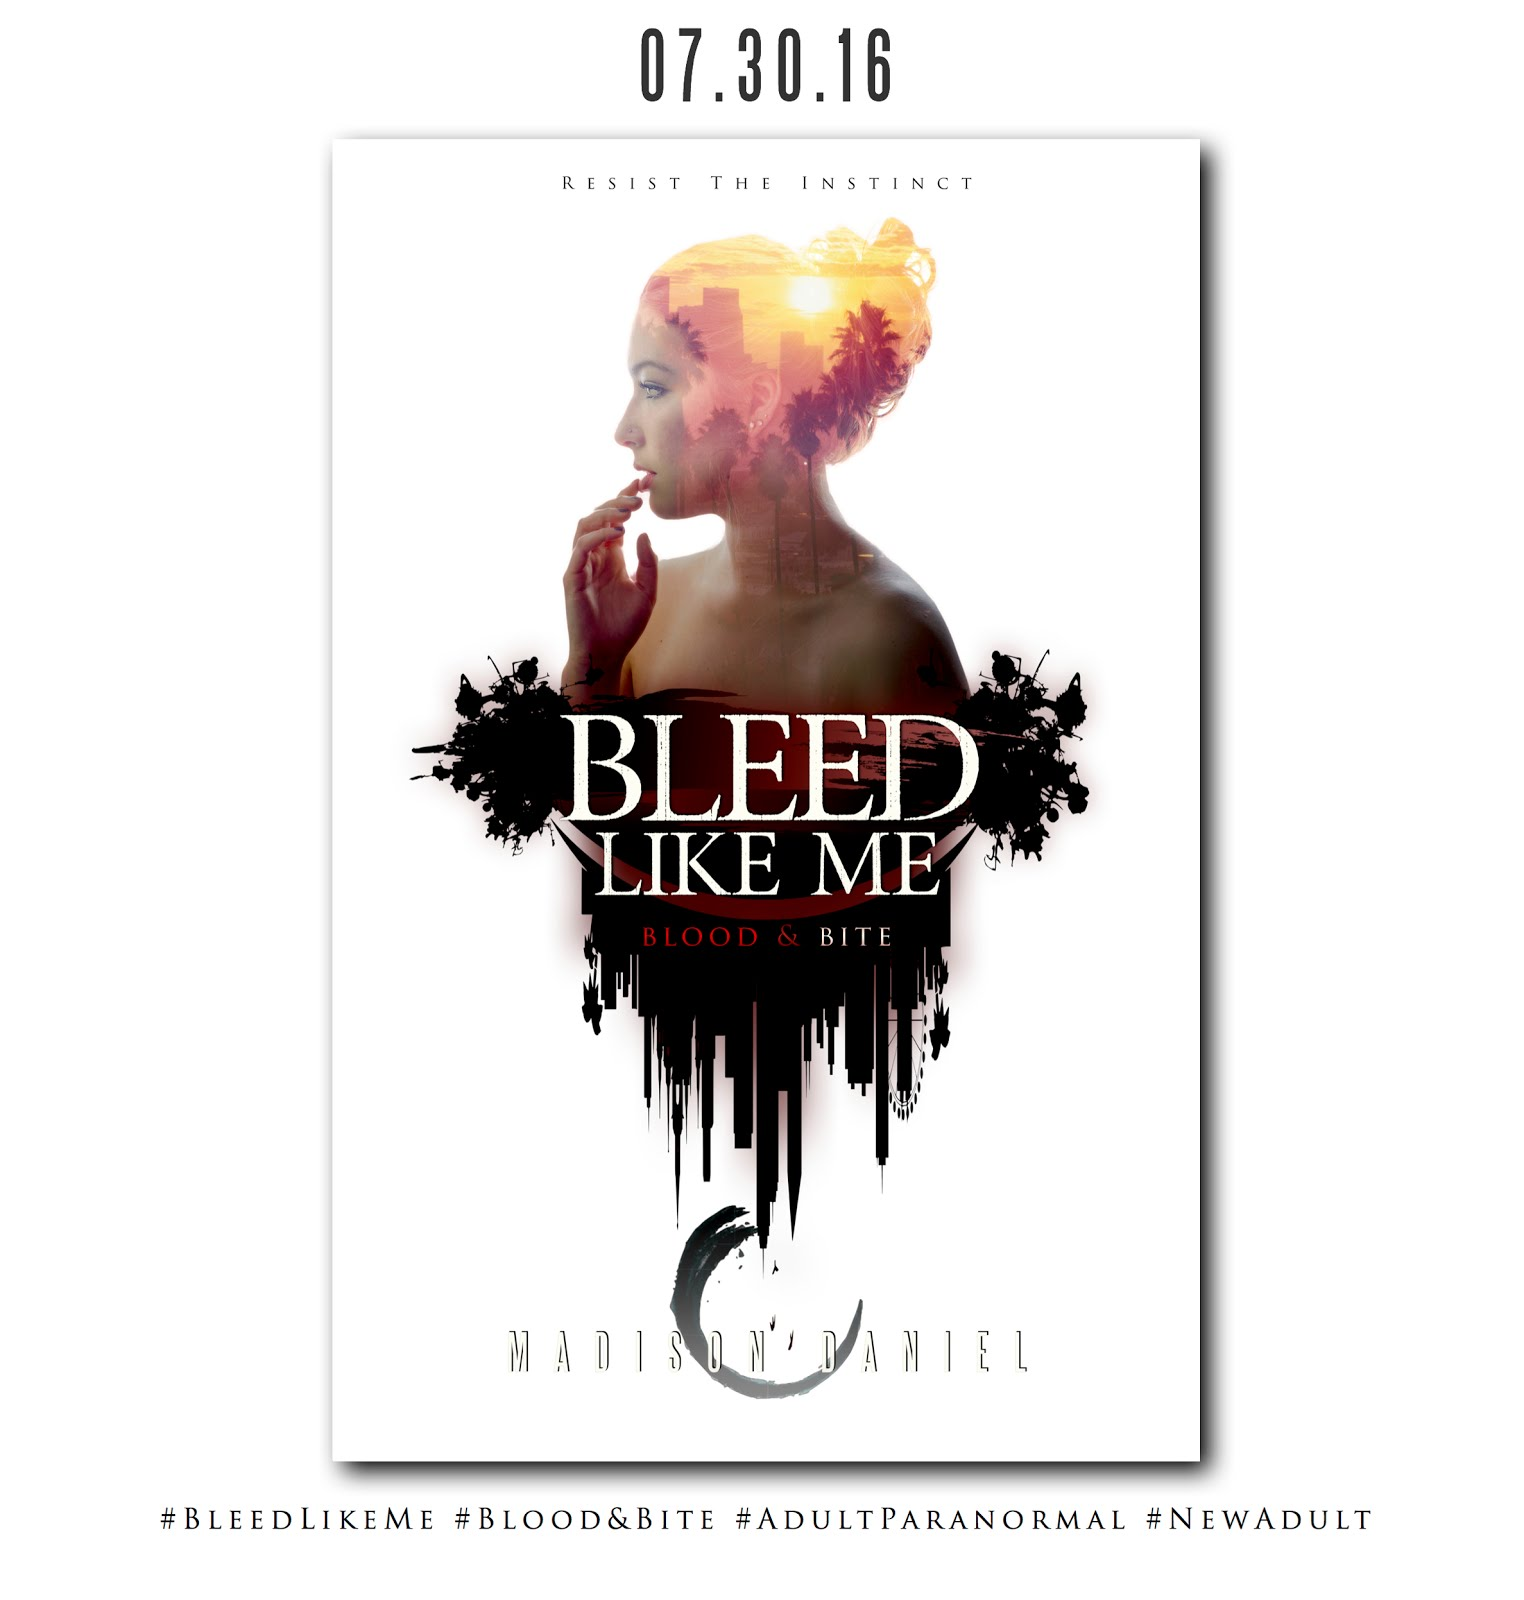 BLEED LIKE ME: BLOOD & BITE  BY MADISON DANIEL